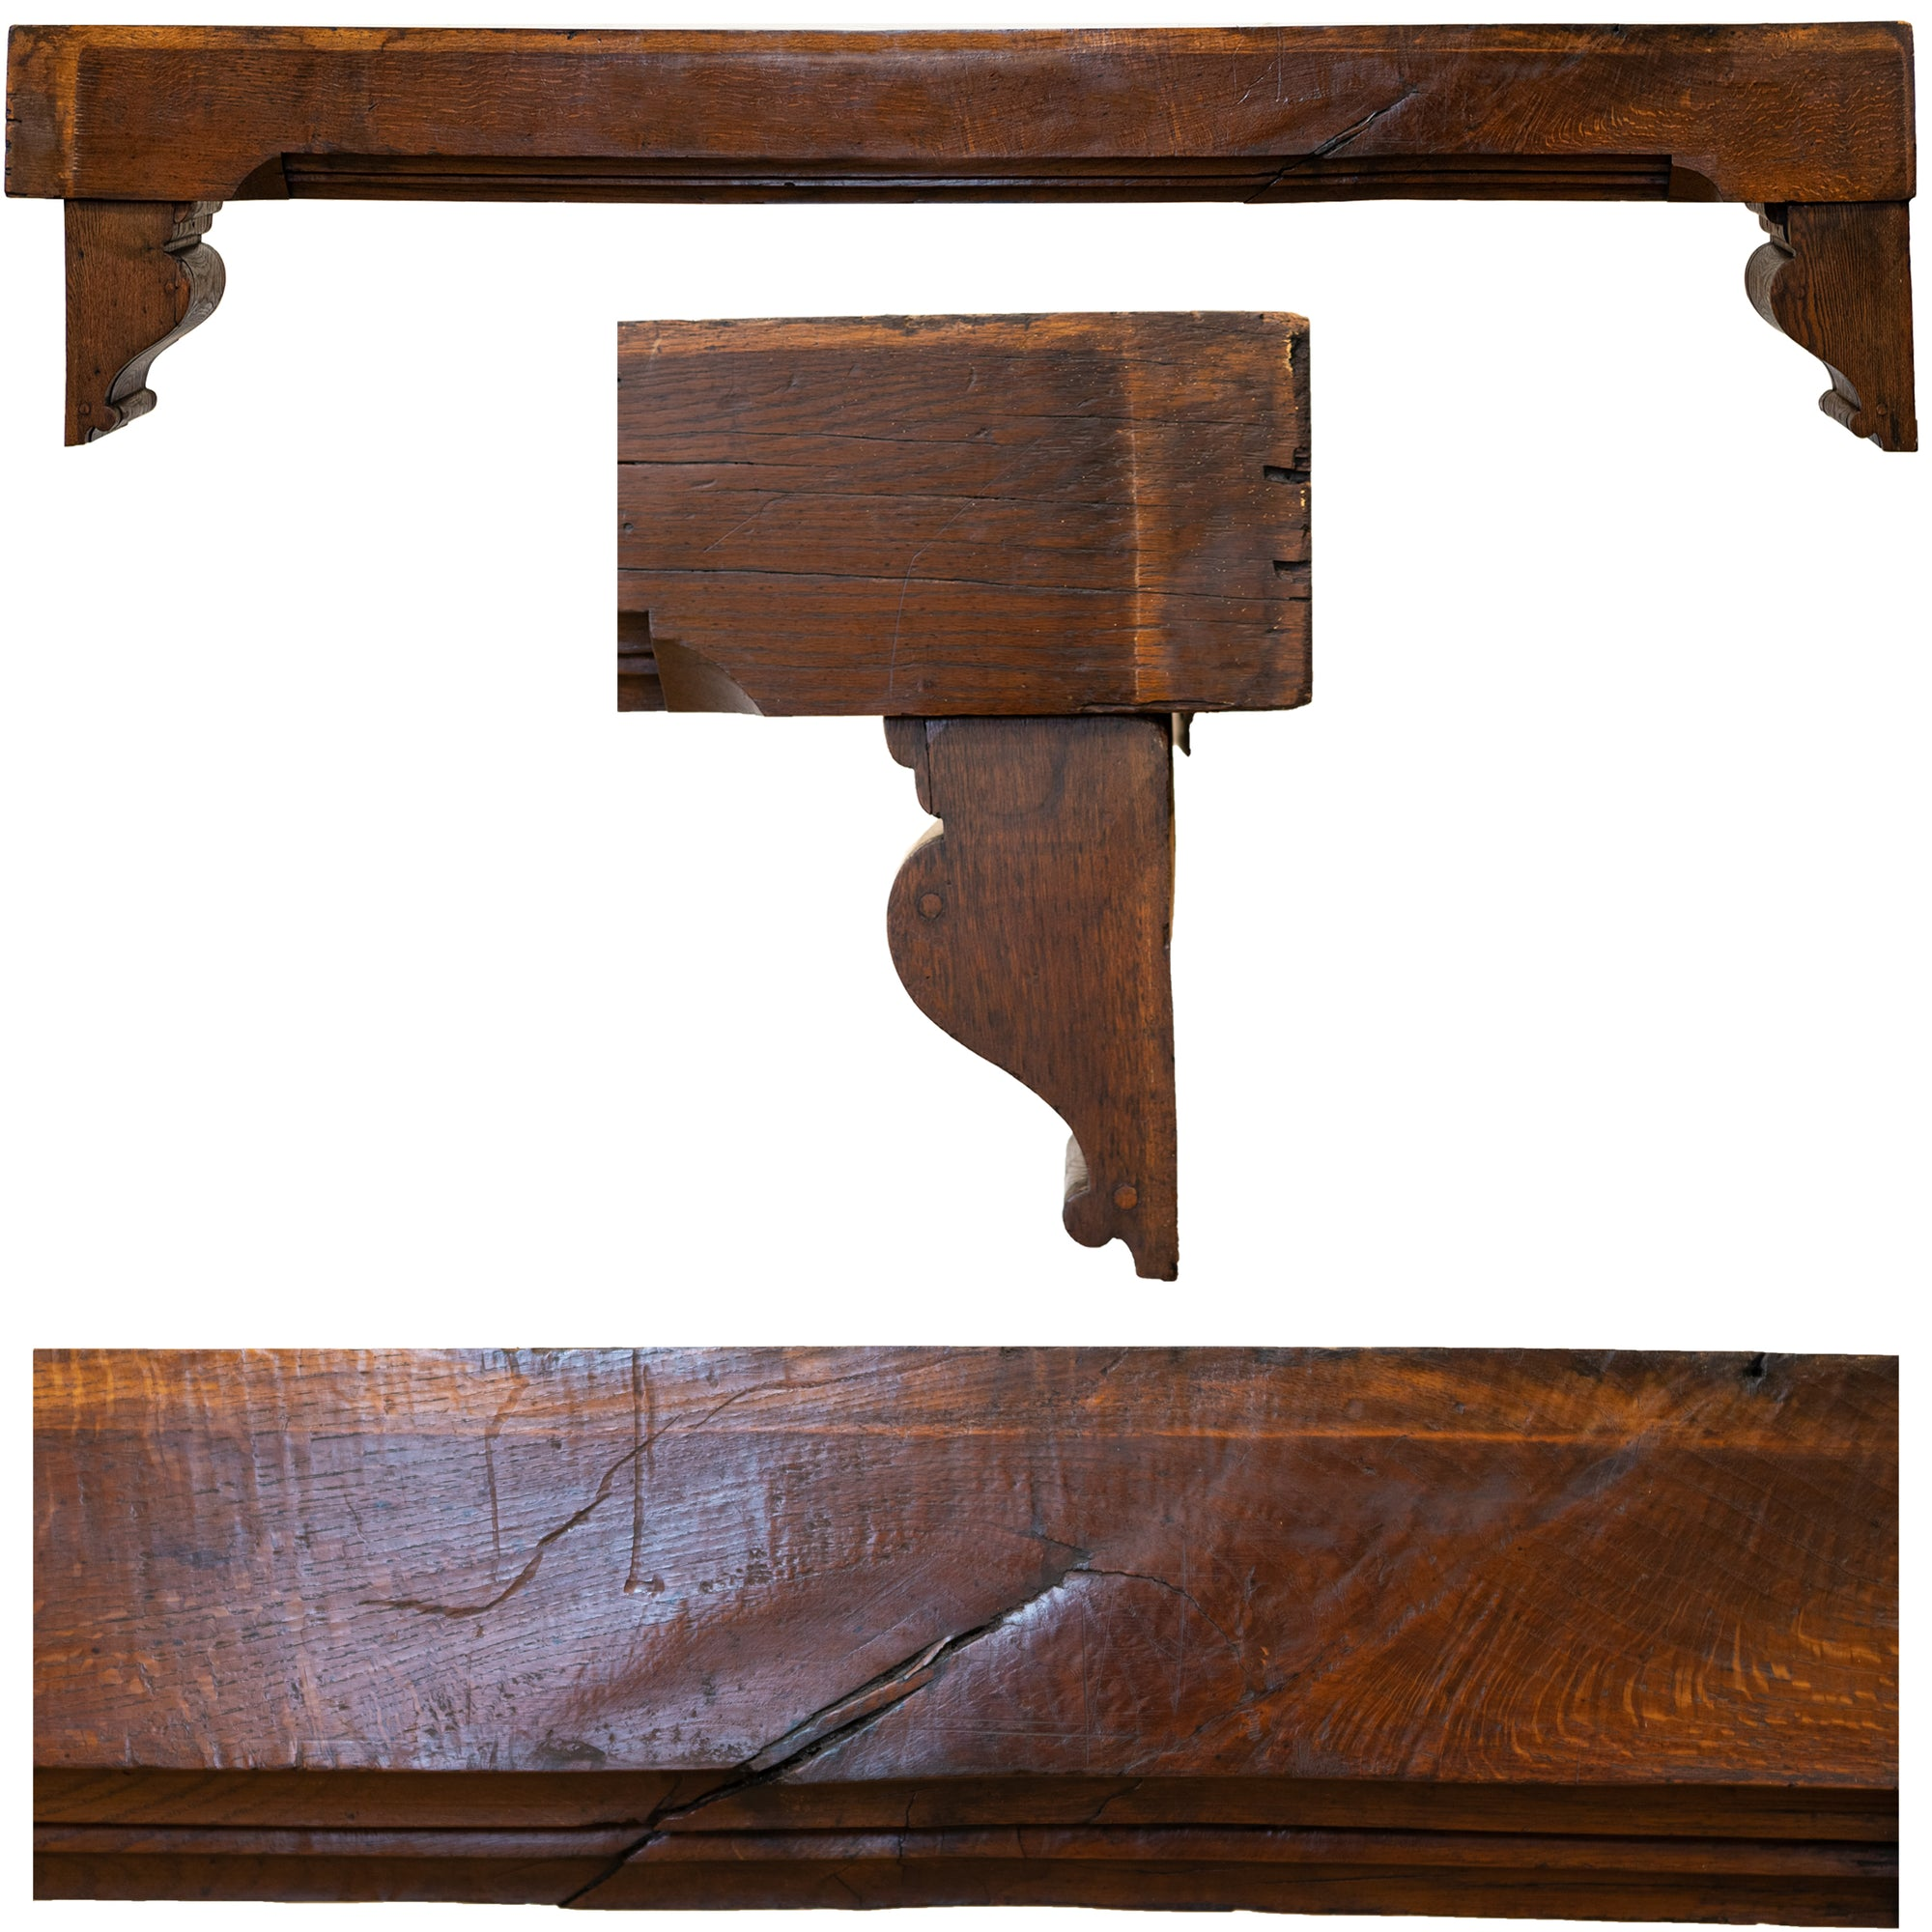 Antique Oak Decorative Beam Pediment with Corbels Inglenook Opening | The Architectural Forum